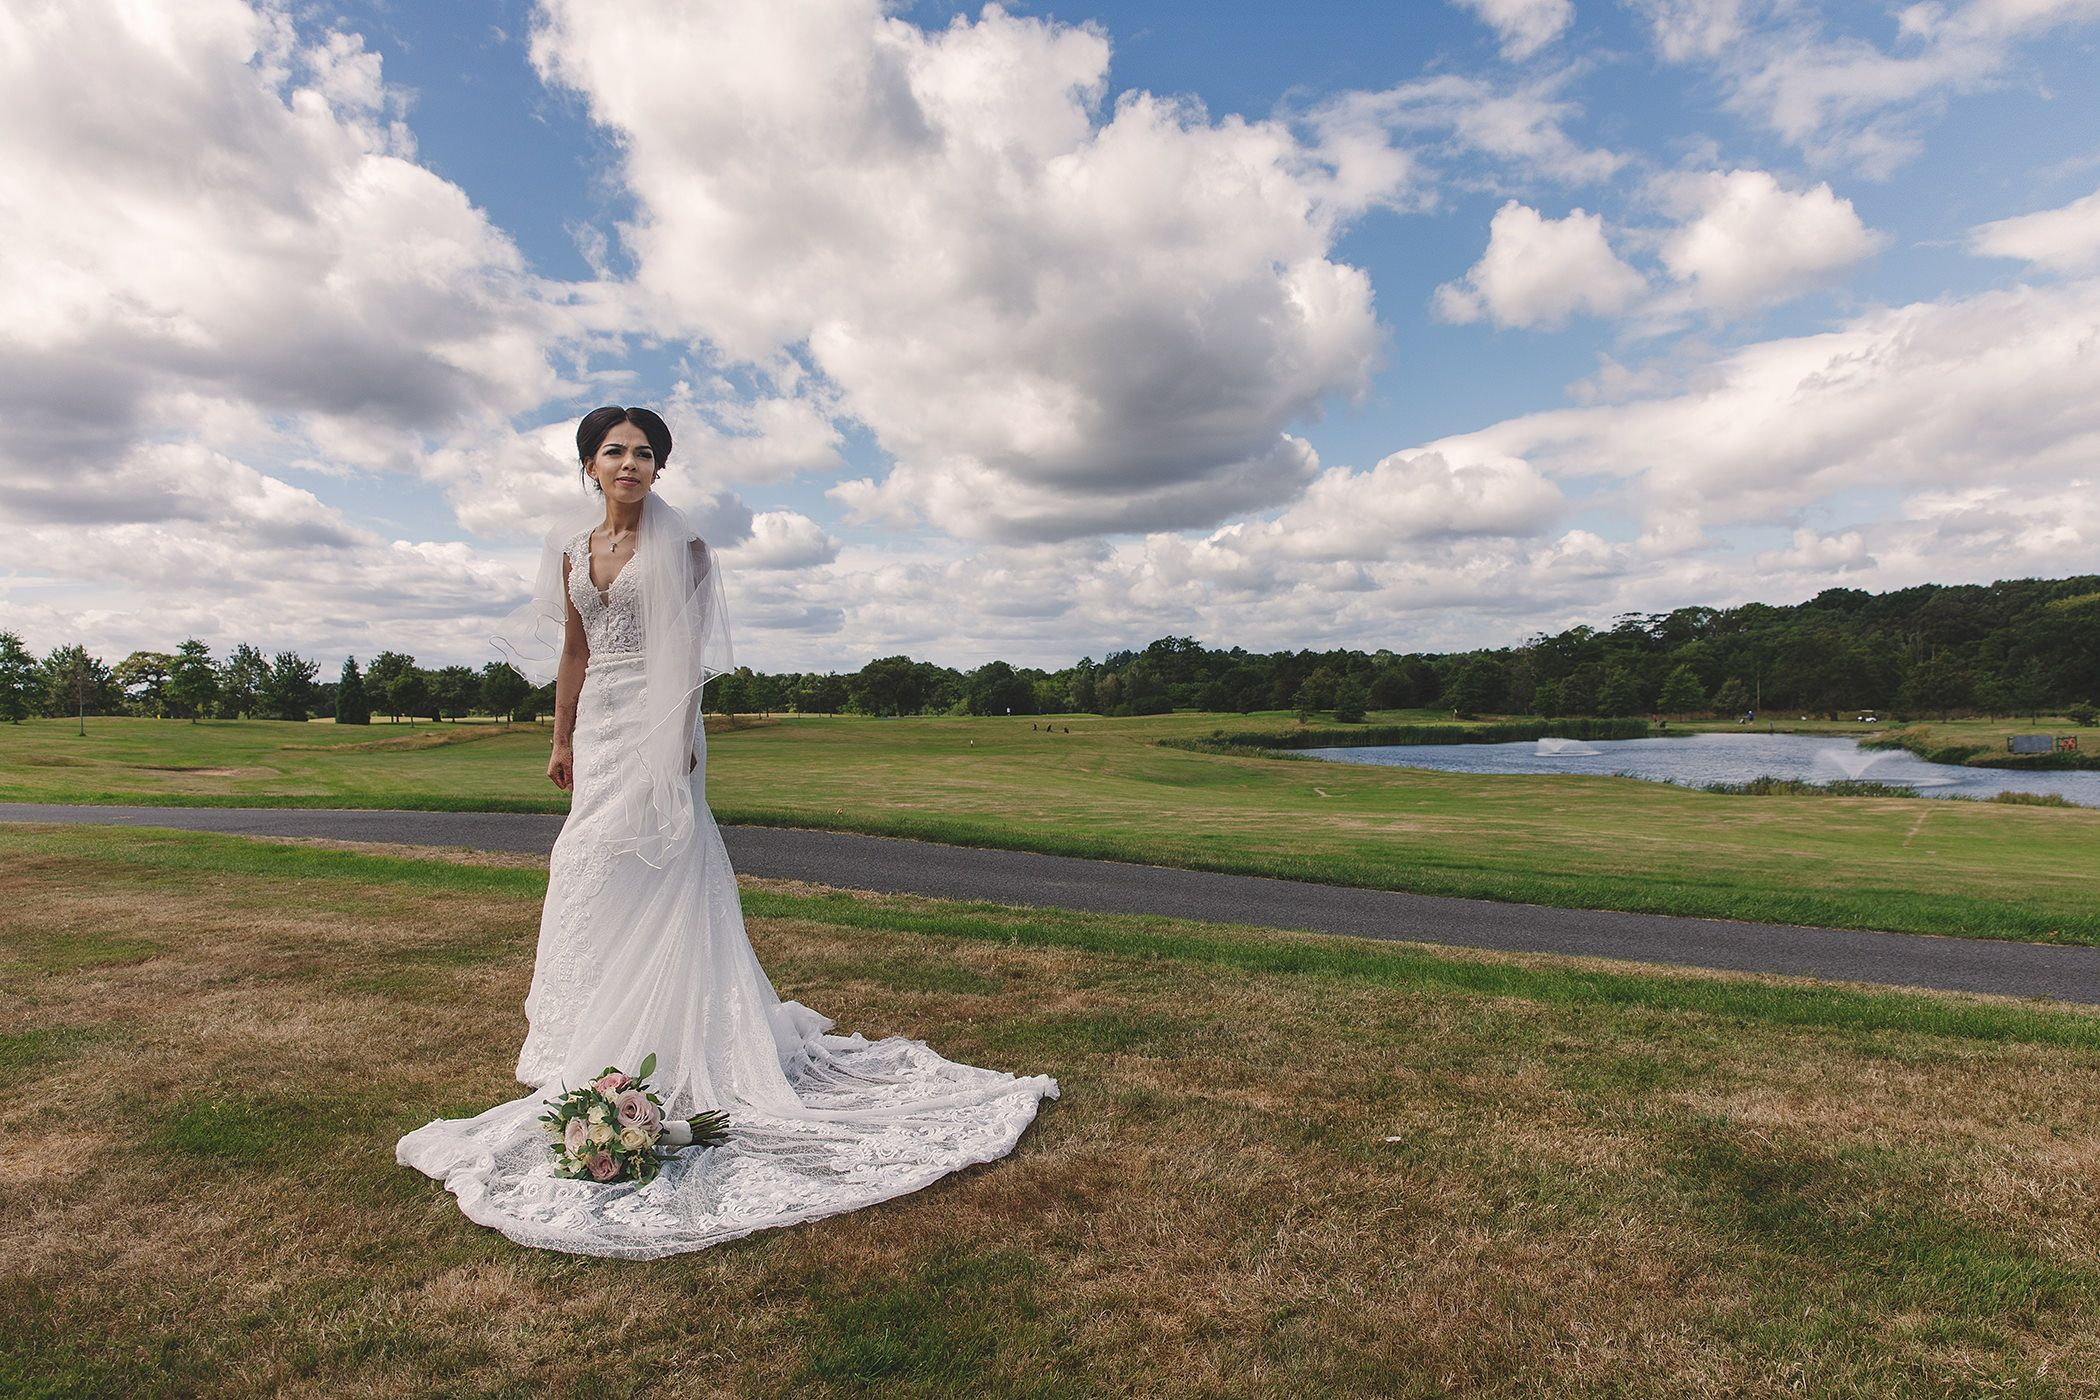 The bride at Carden Park Hotel